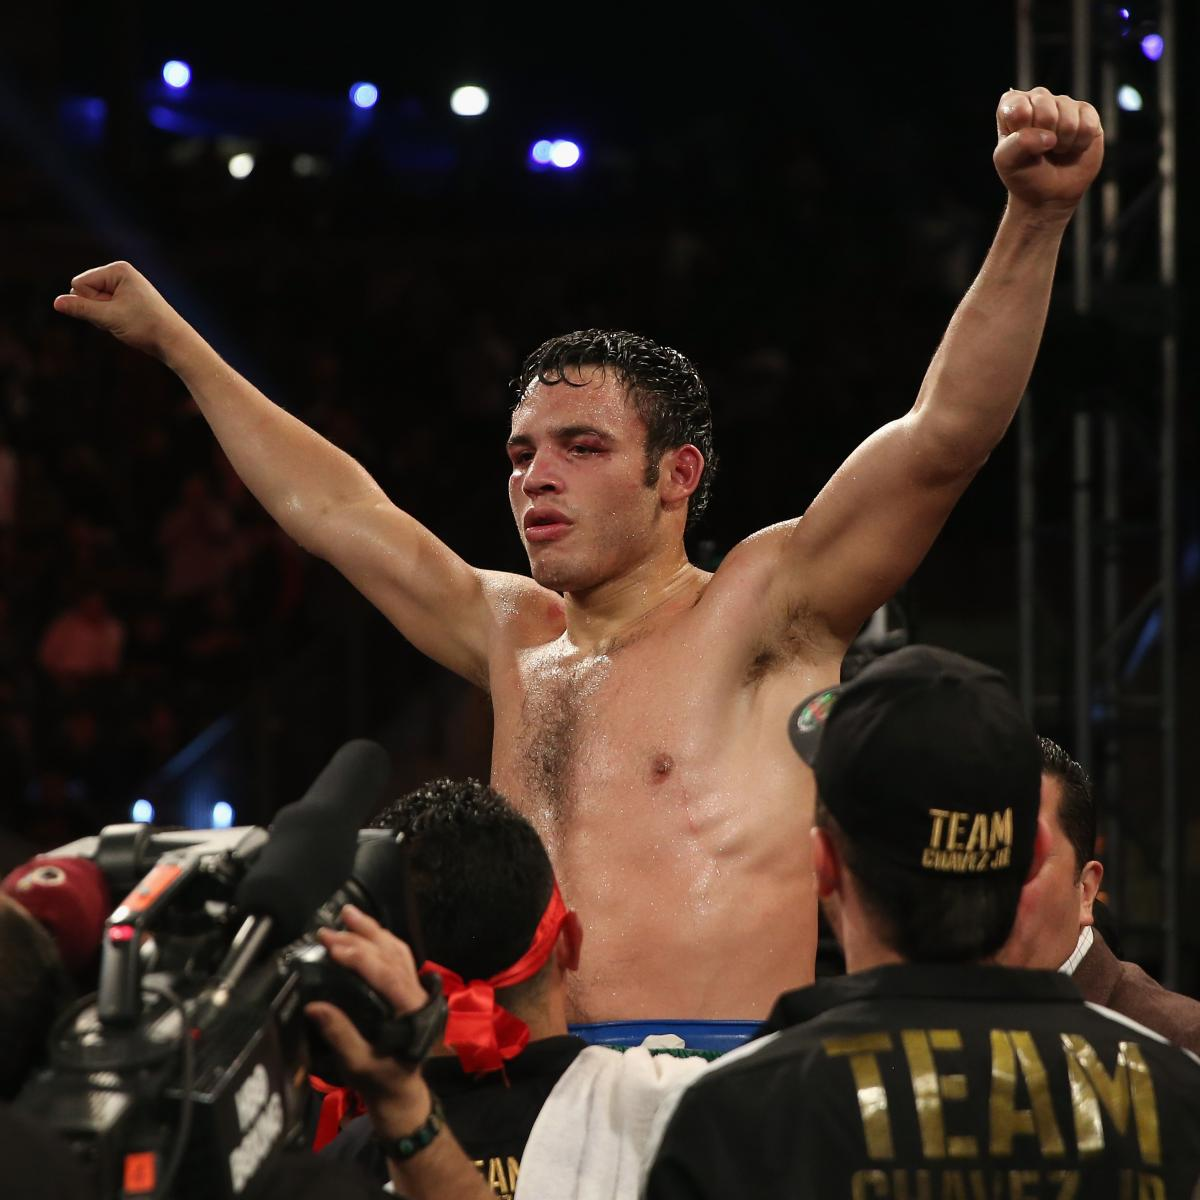 Julio Cesar Chavez Jr.'s Win Highlights Boxing's Continued